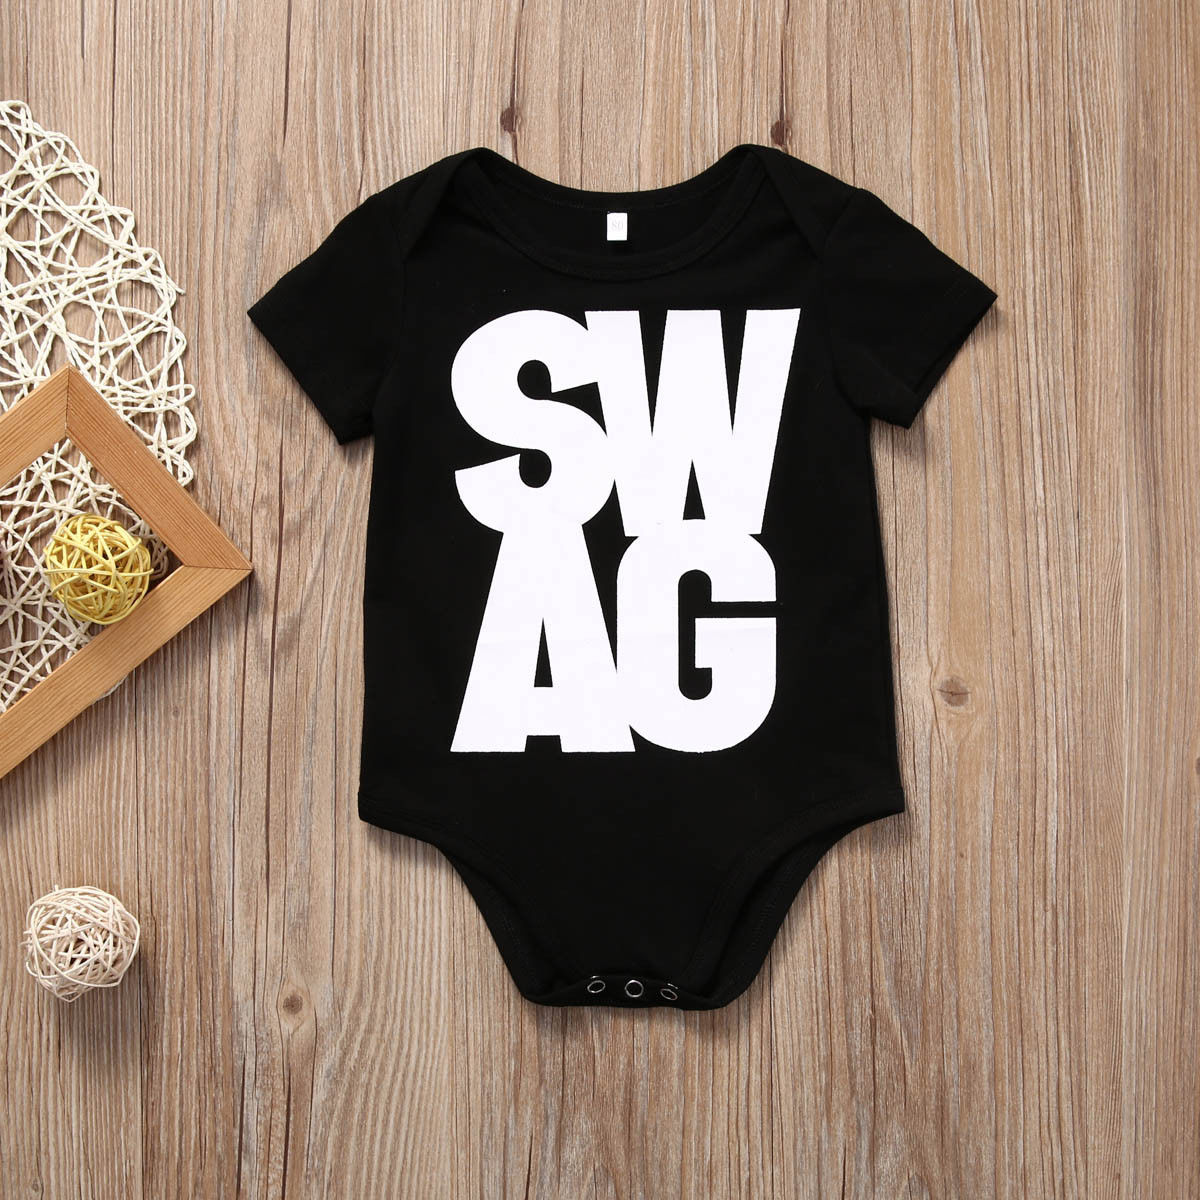 Newborn Baby Boys Girls Romper Bodysuit Jumpsuit Outfits Sunsuit Clothes Summer